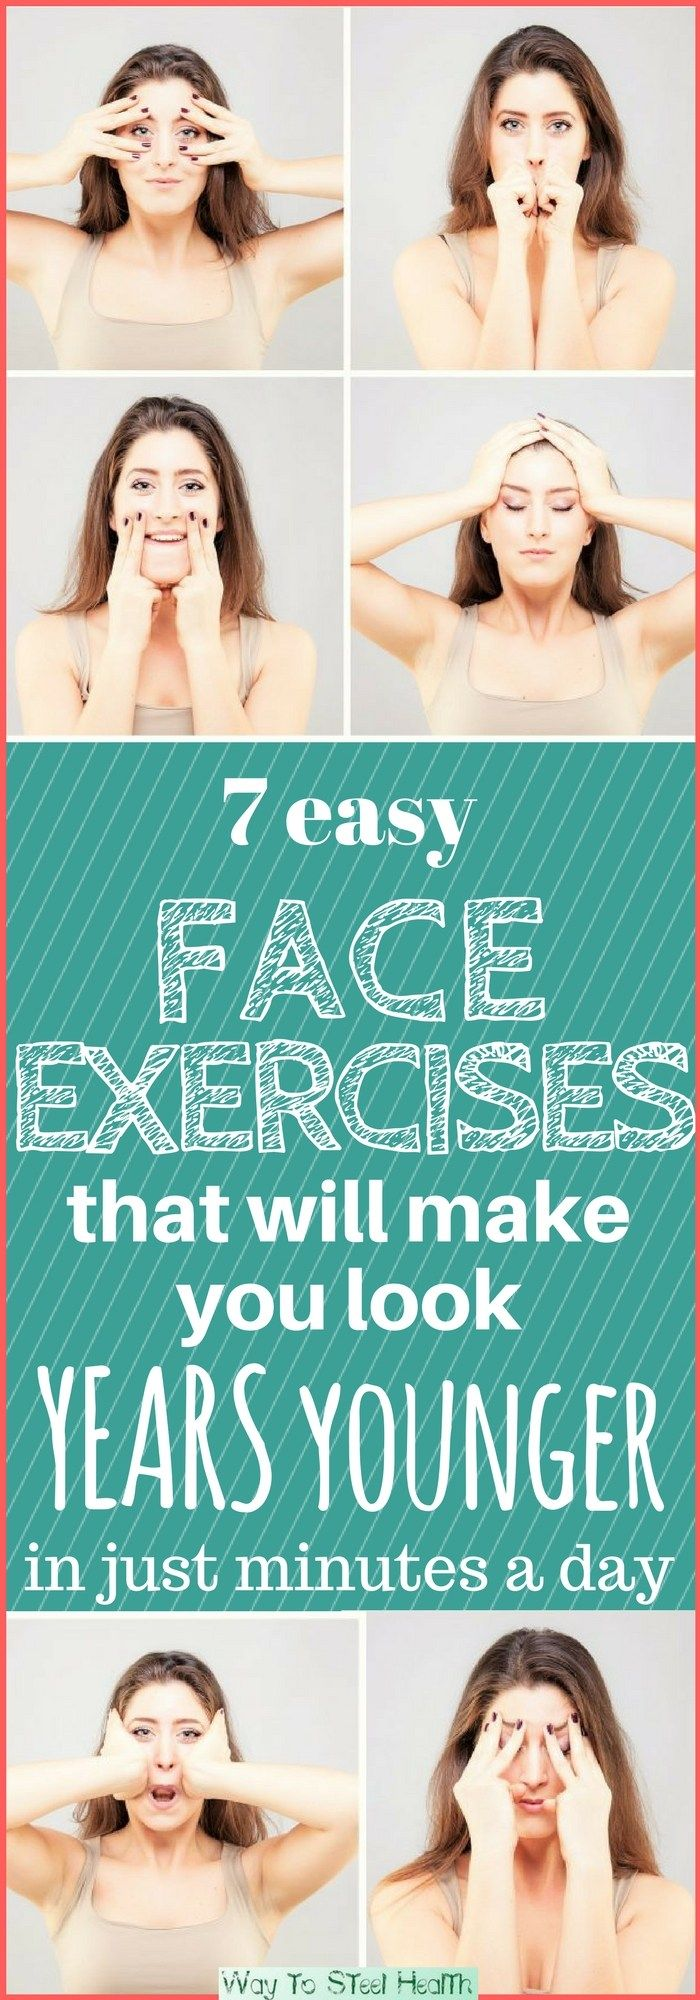 Your facial muscles need exercise just as much as the rest of your body. And facial exercises work just like regular muscle exercises.